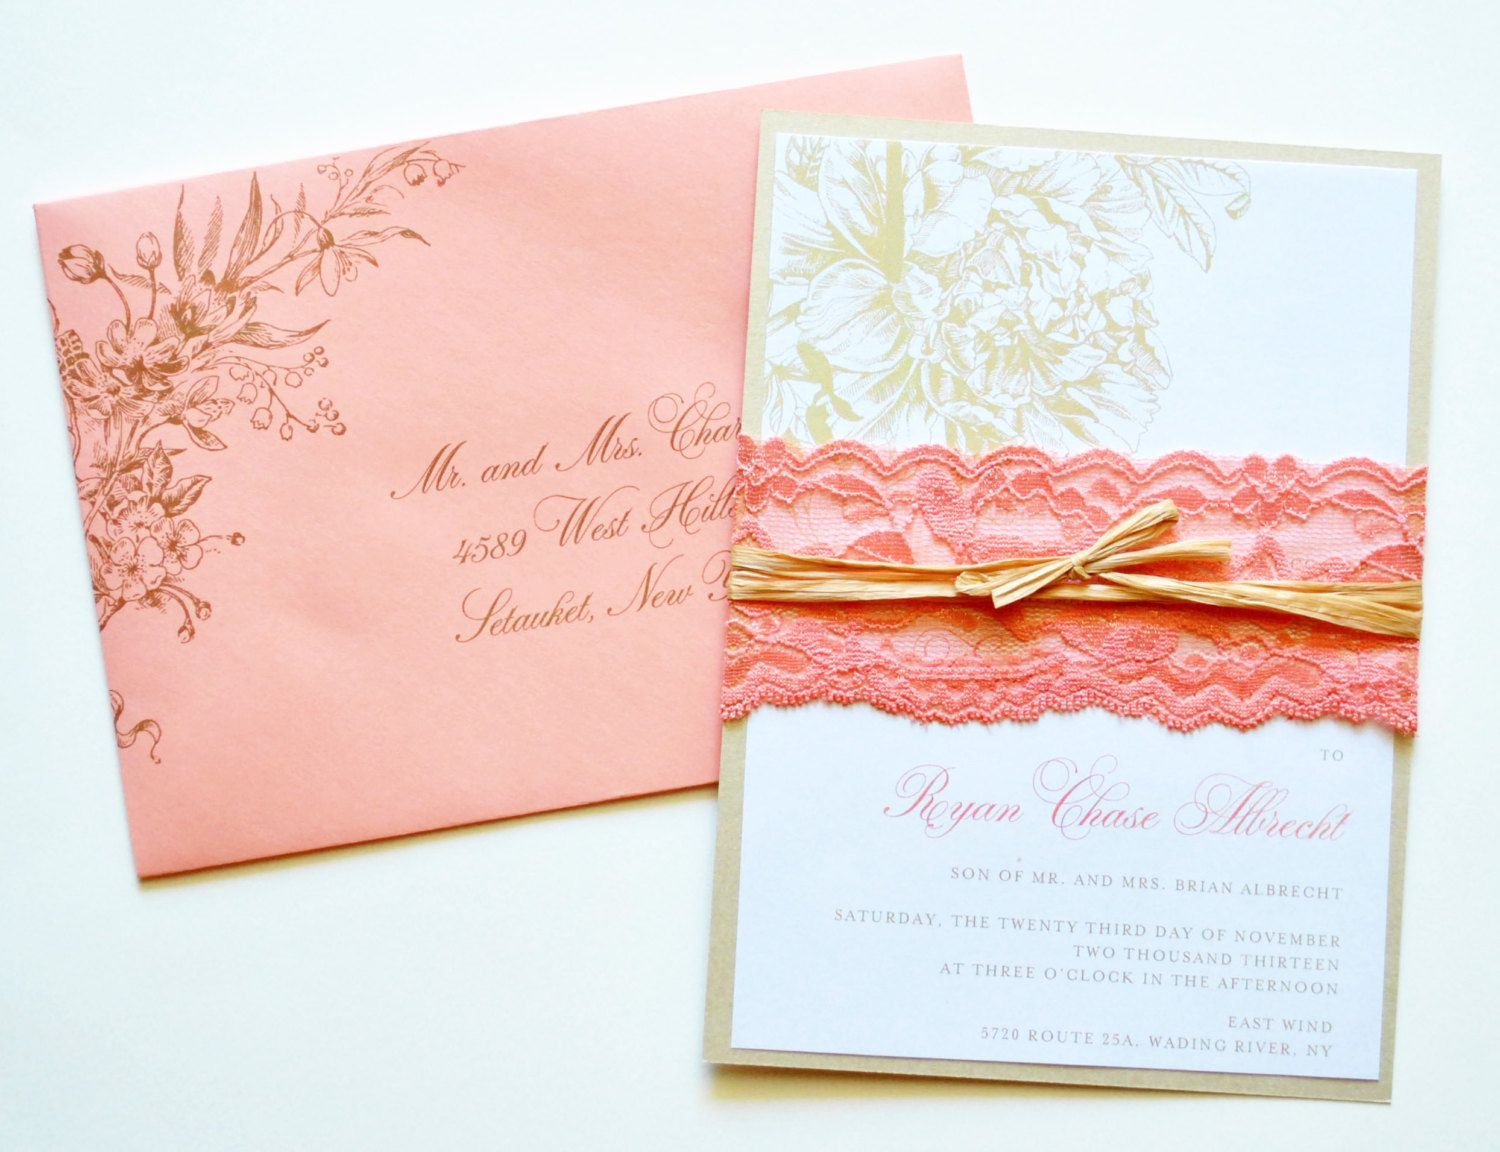 Coral wedding invitations coral lace wedding by whimsybdesigns my coral wedding invitations coral lace wedding by whimsybdesigns filmwisefo Image collections